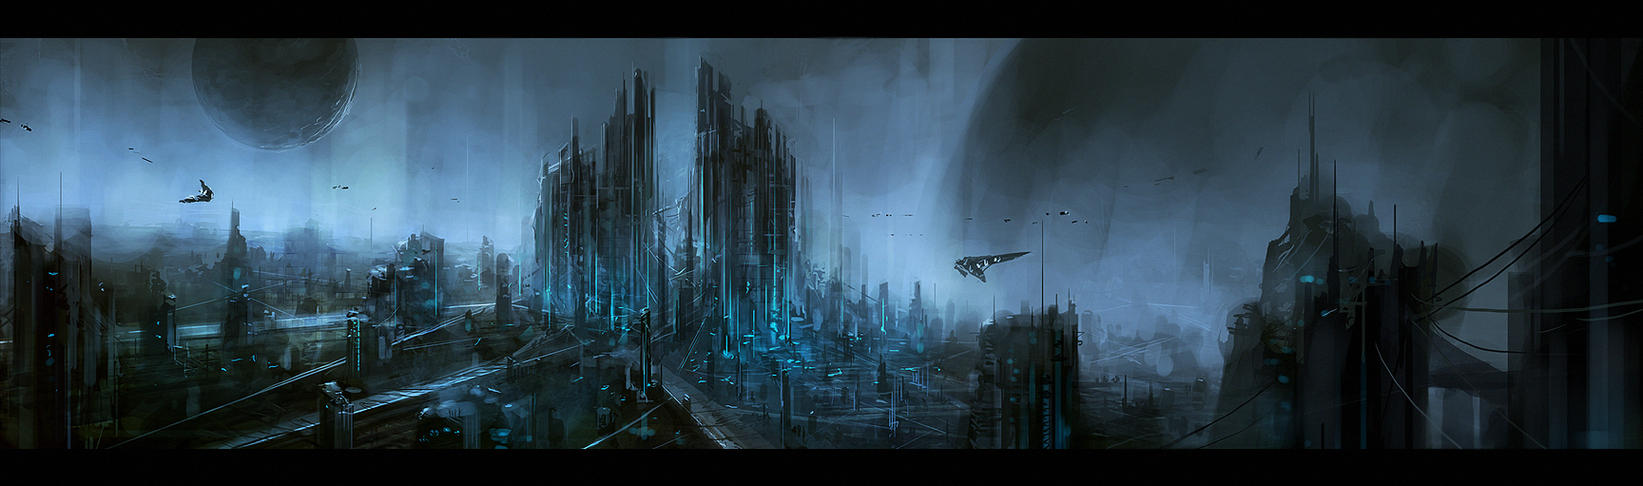 Scythe City by ChrisCold